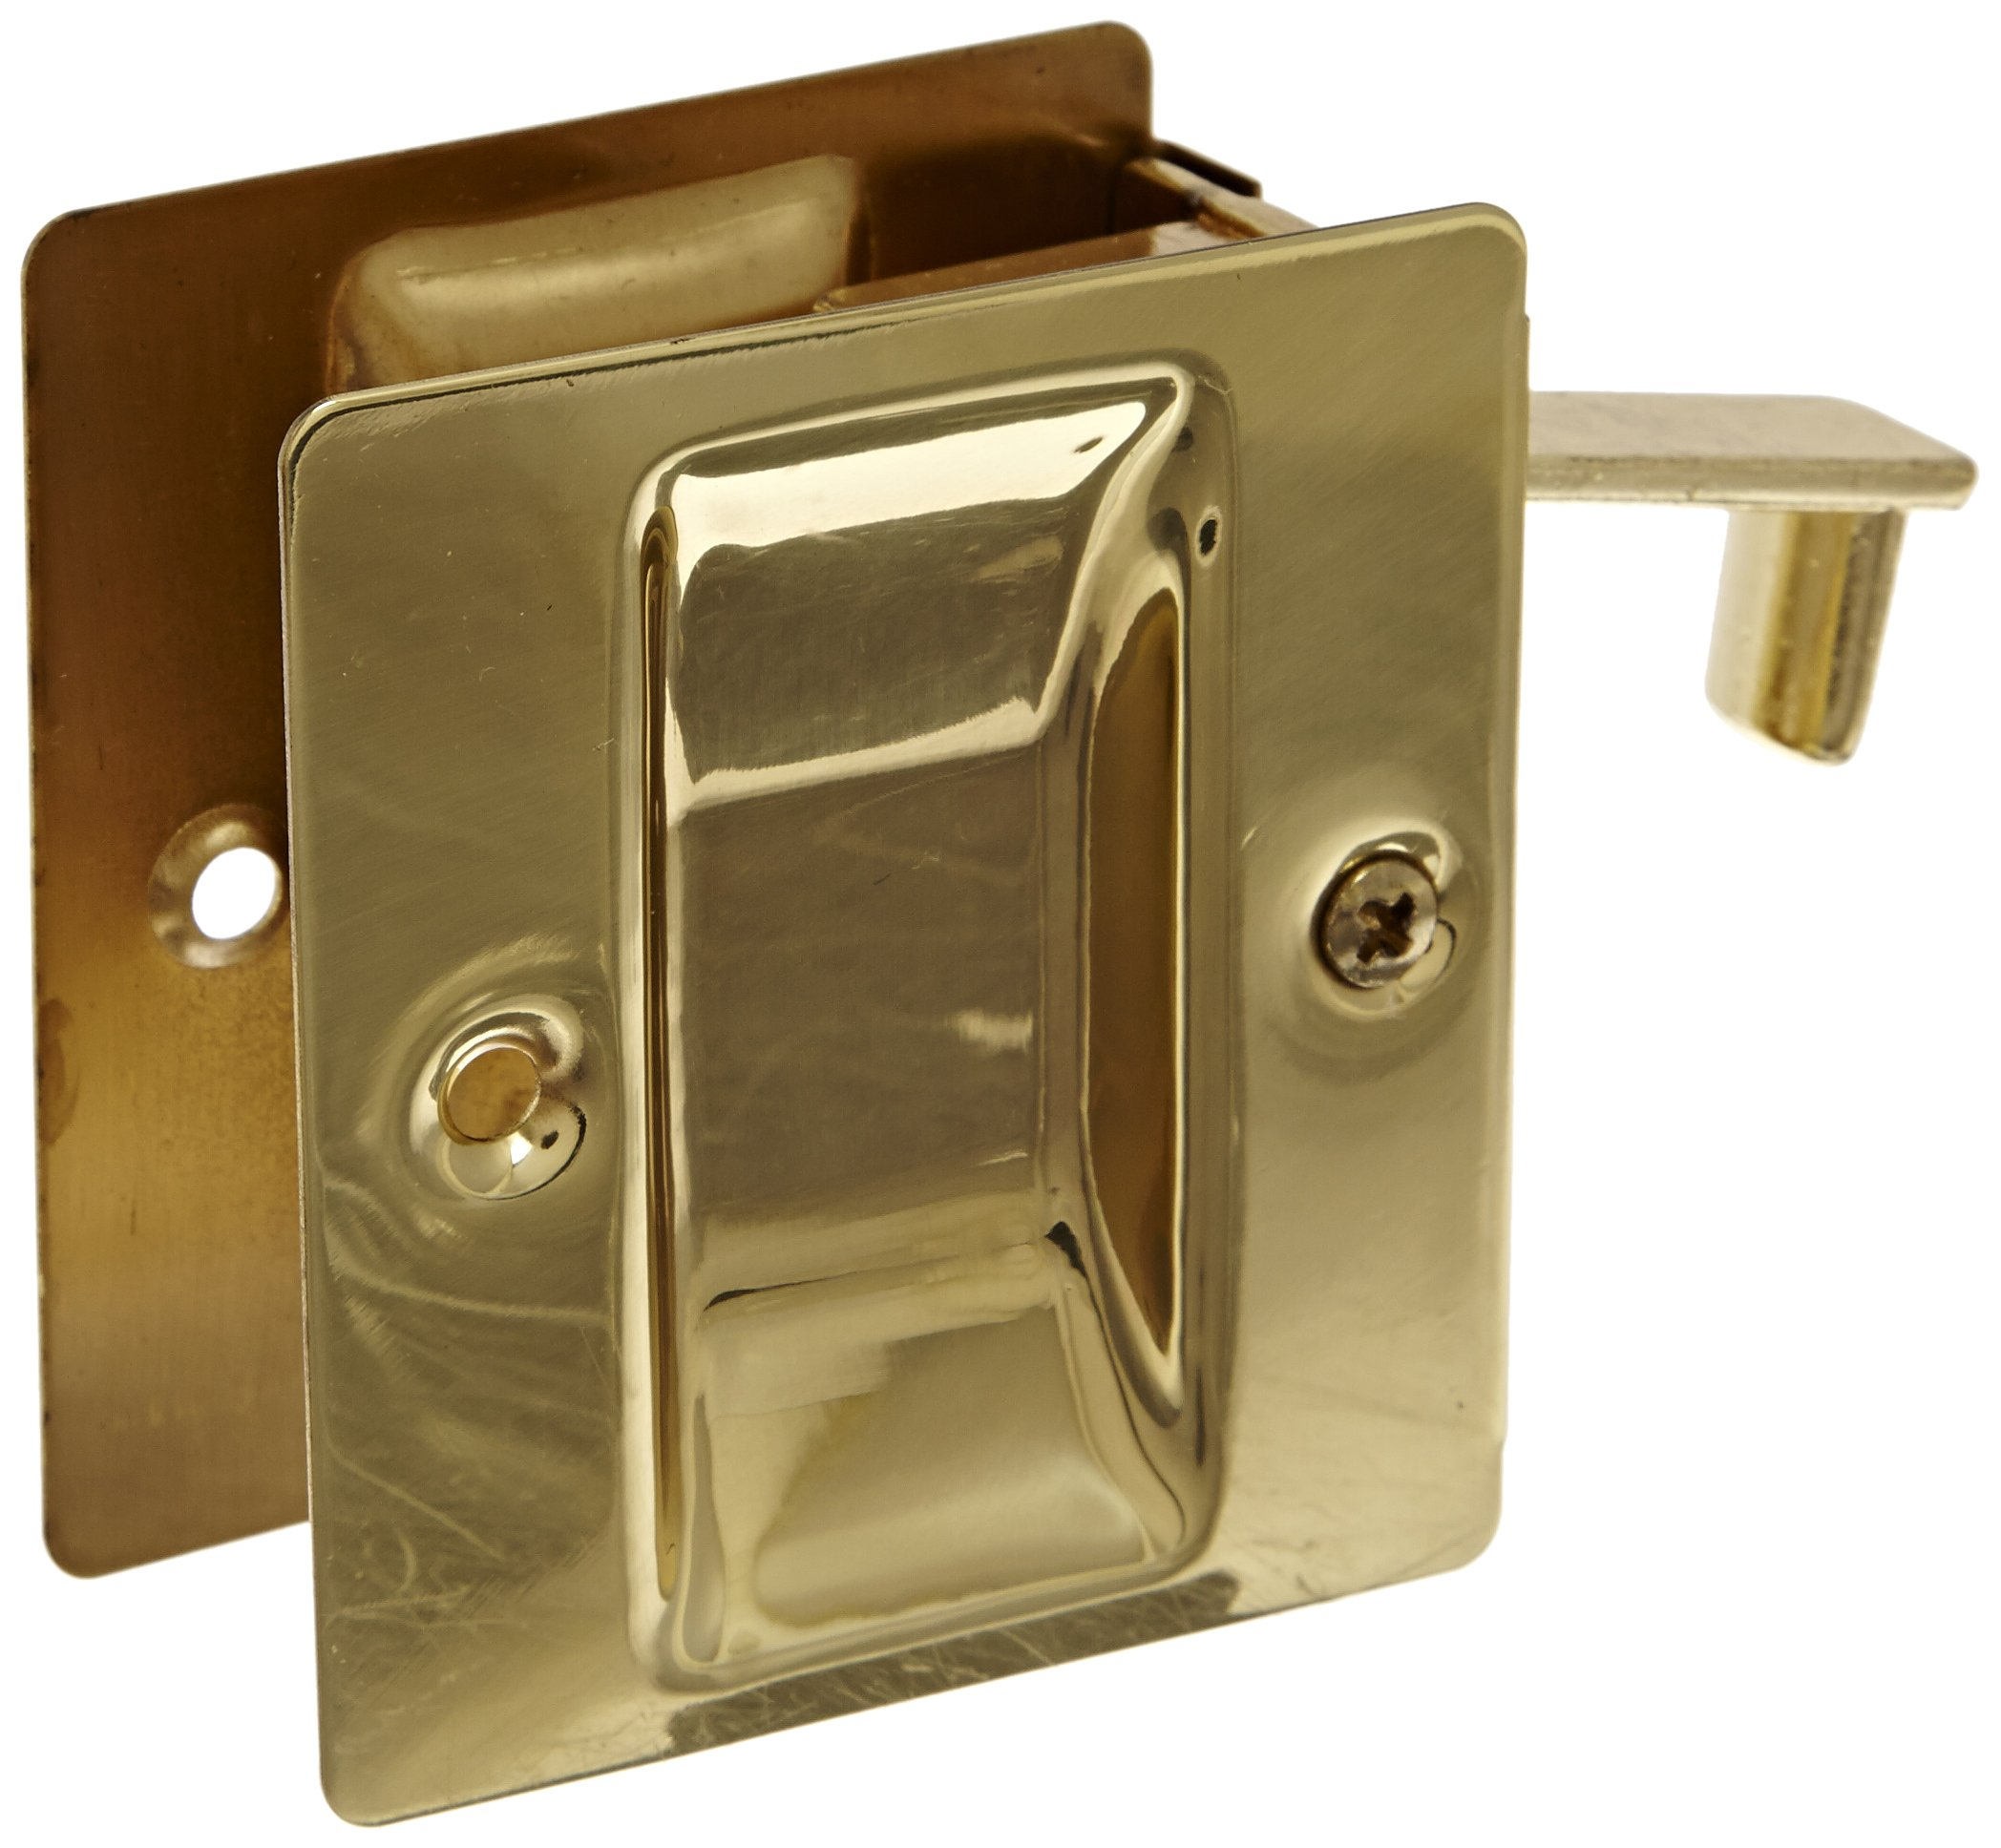 Rockwood 890.3 Brass Pocket Door Pull, 2-1/2'' Width x 2-3/4'' Height, Polished Clear Coated Finish